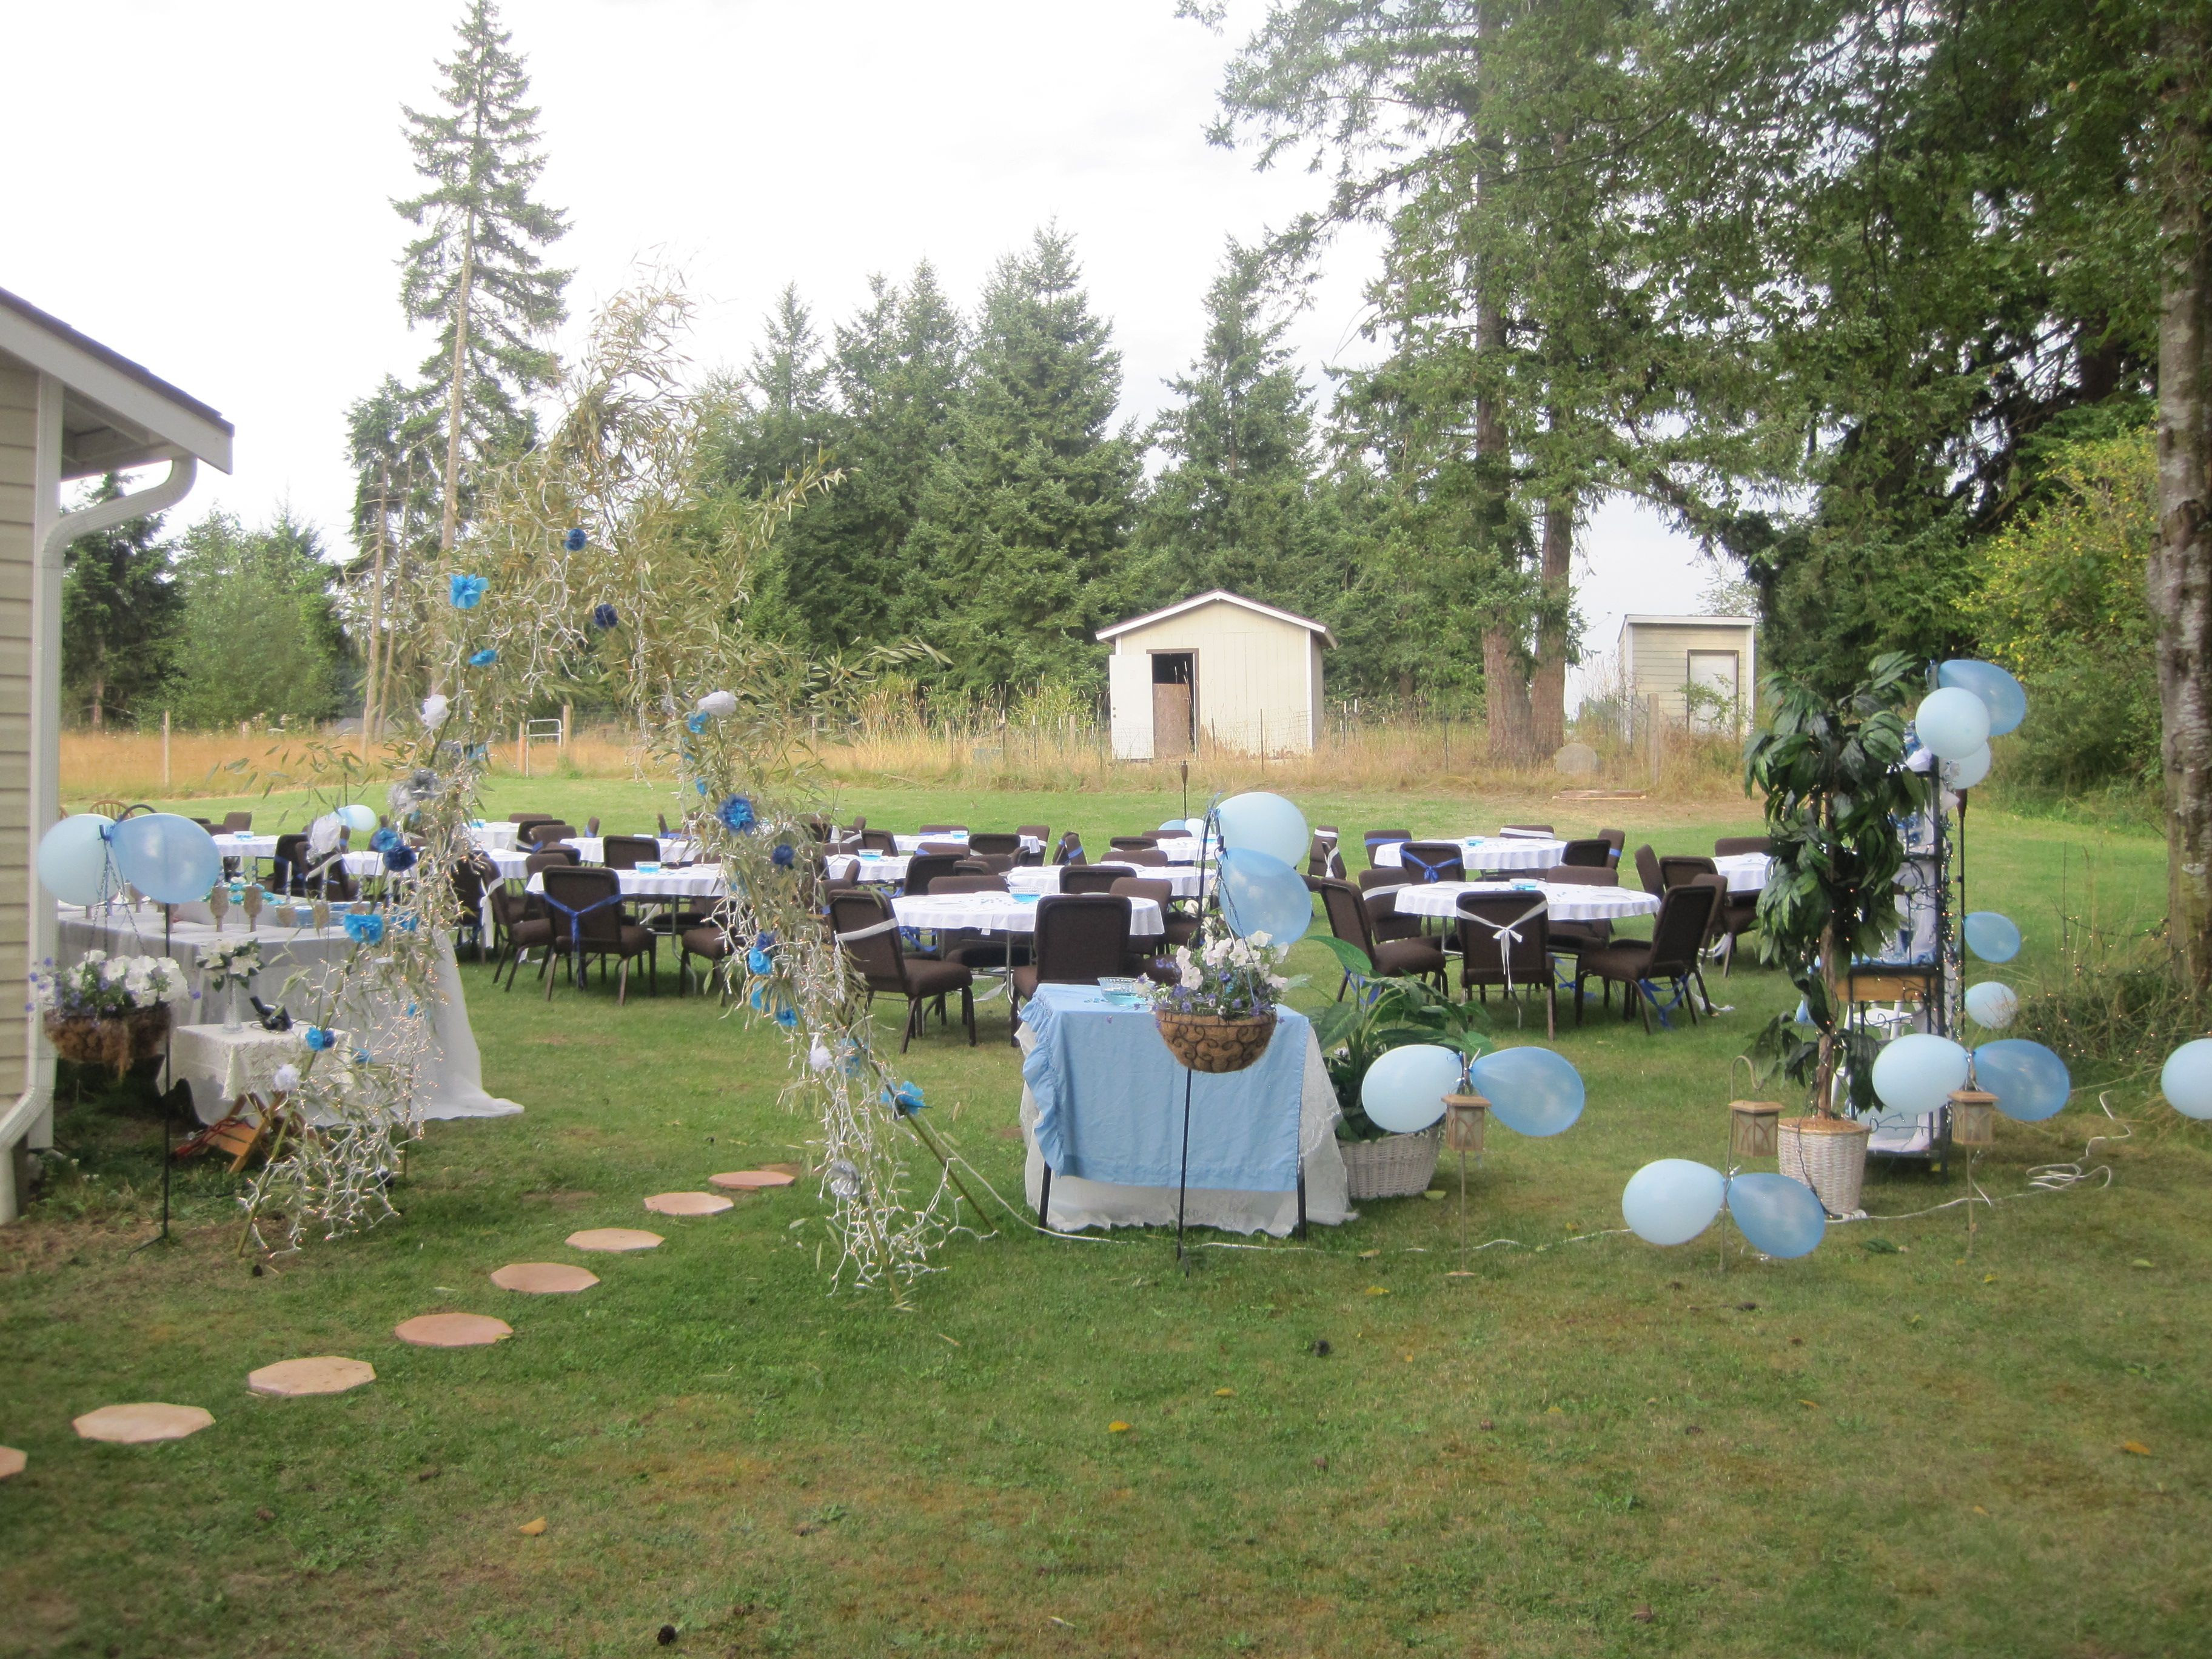 Backyard Birthday Party Ideas Sweet 16  My daughter sweet 16 in our backyard and I did everything